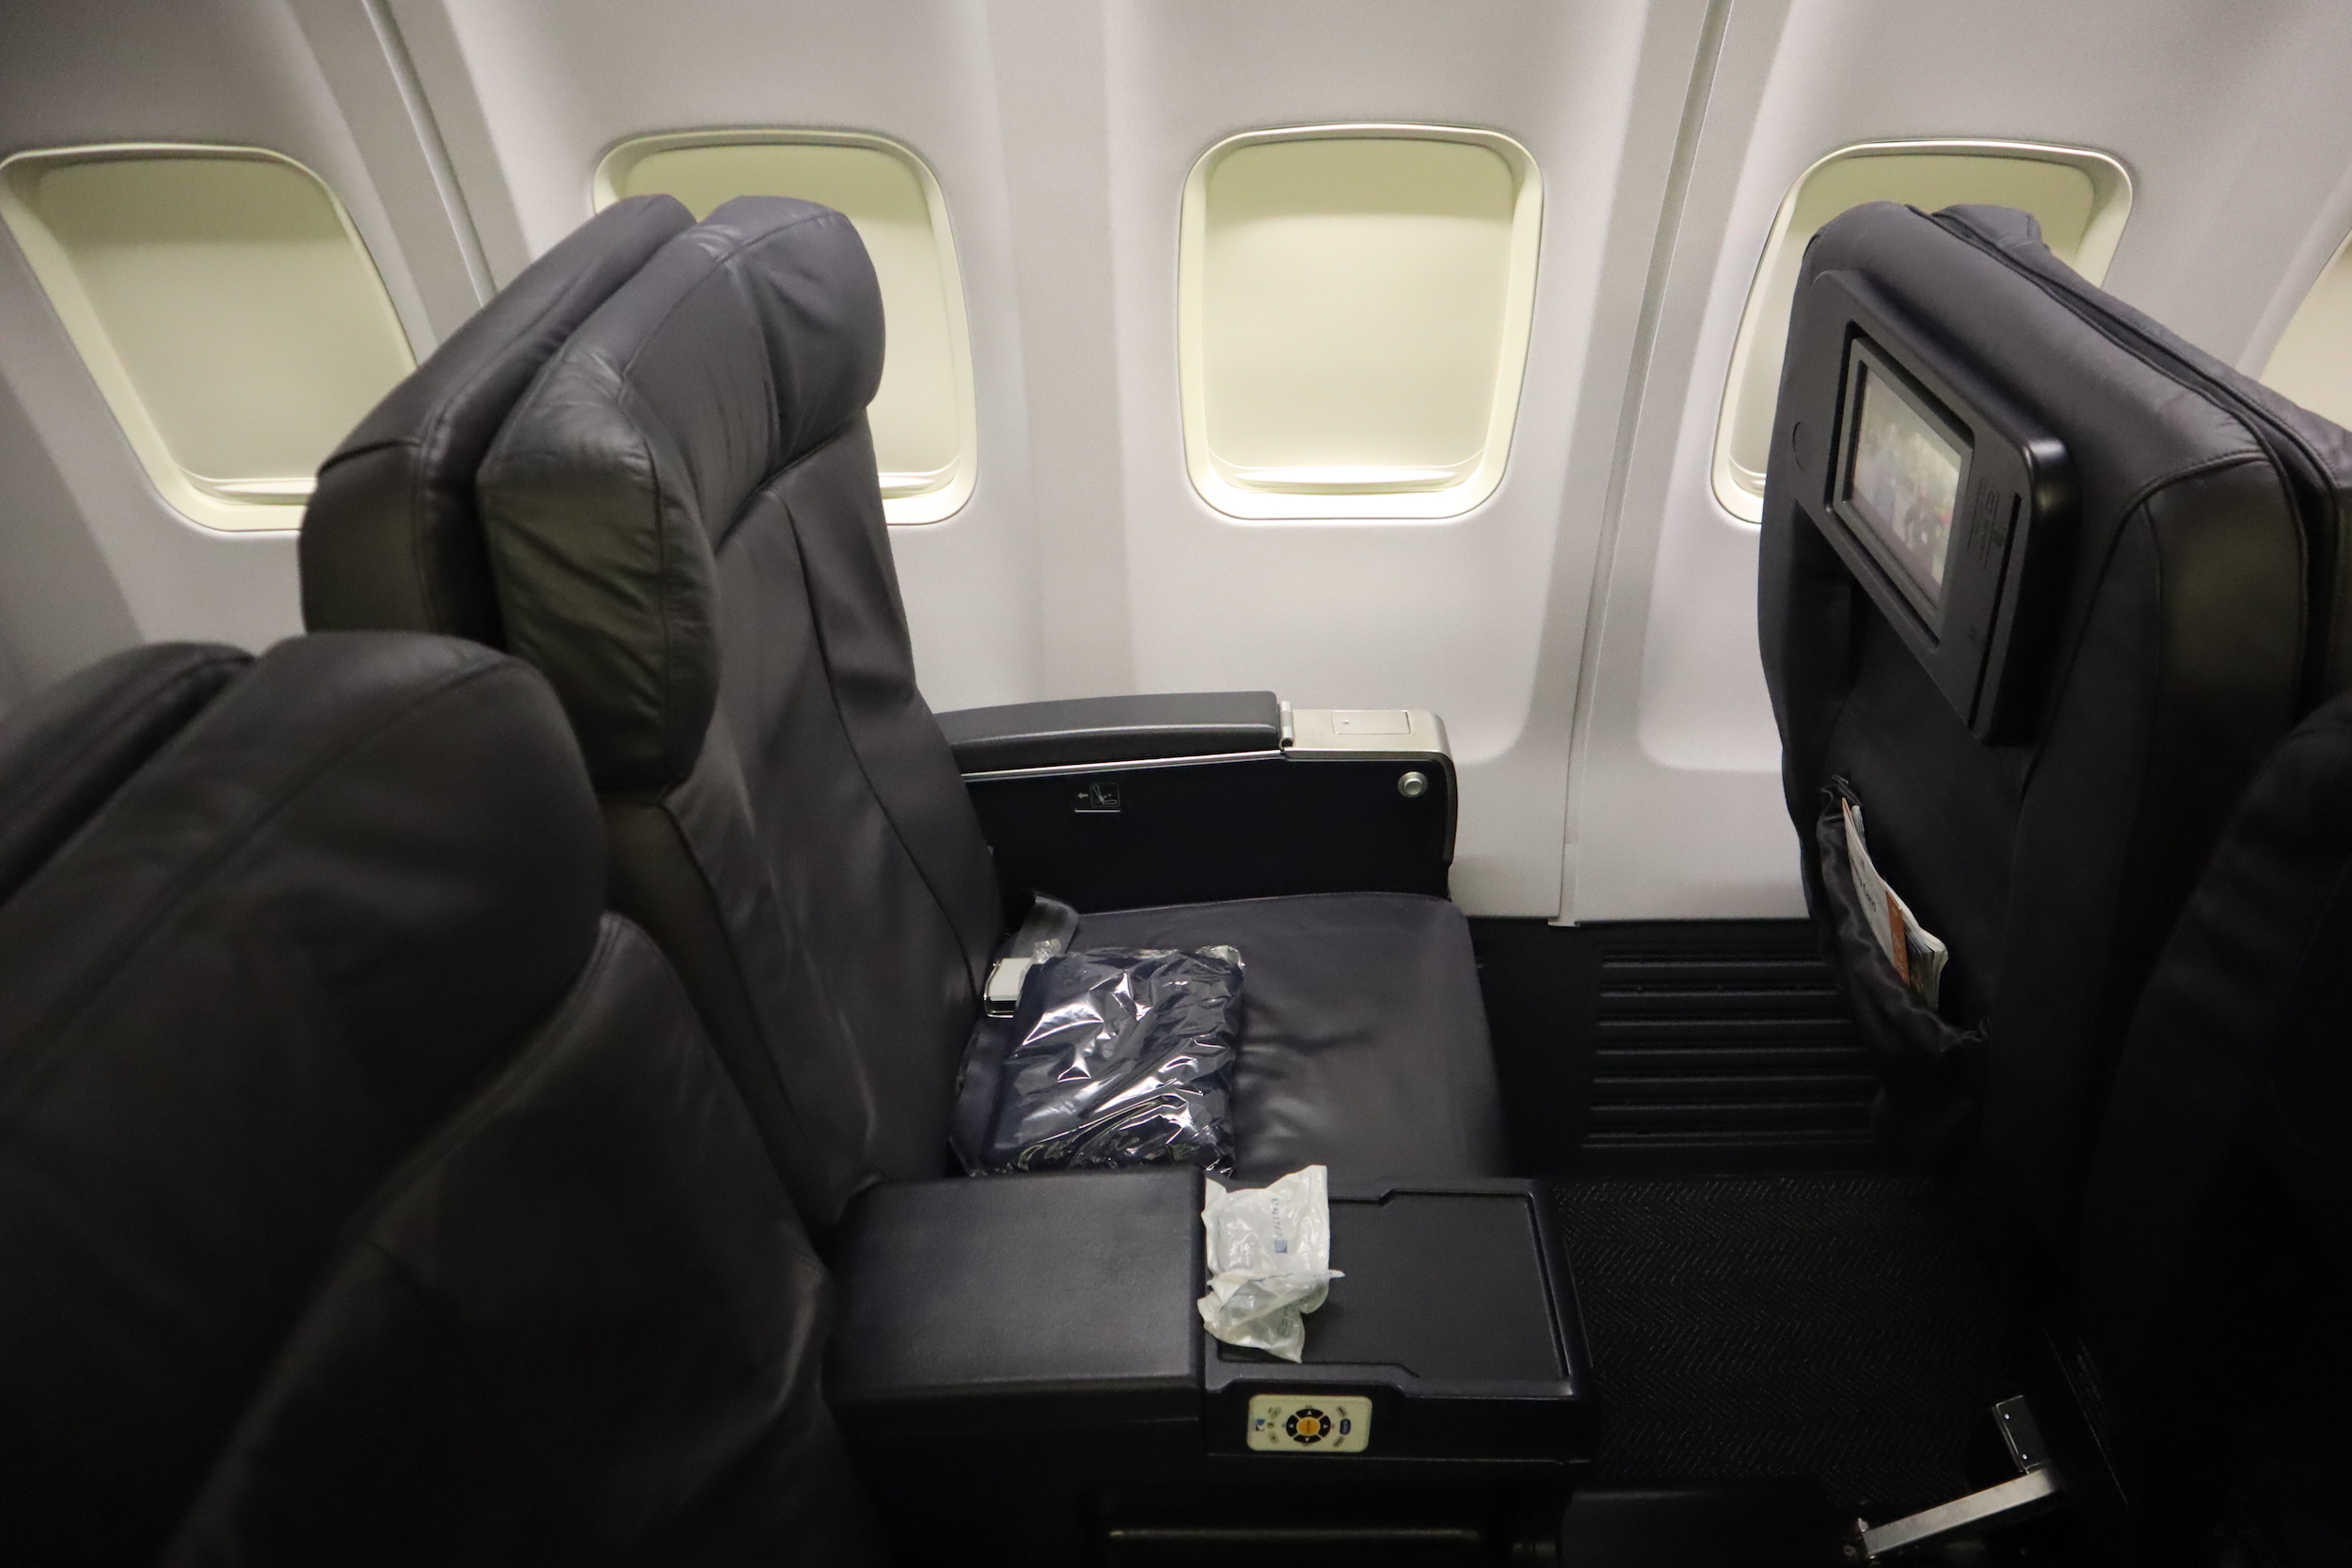 United 737 business class – Seats